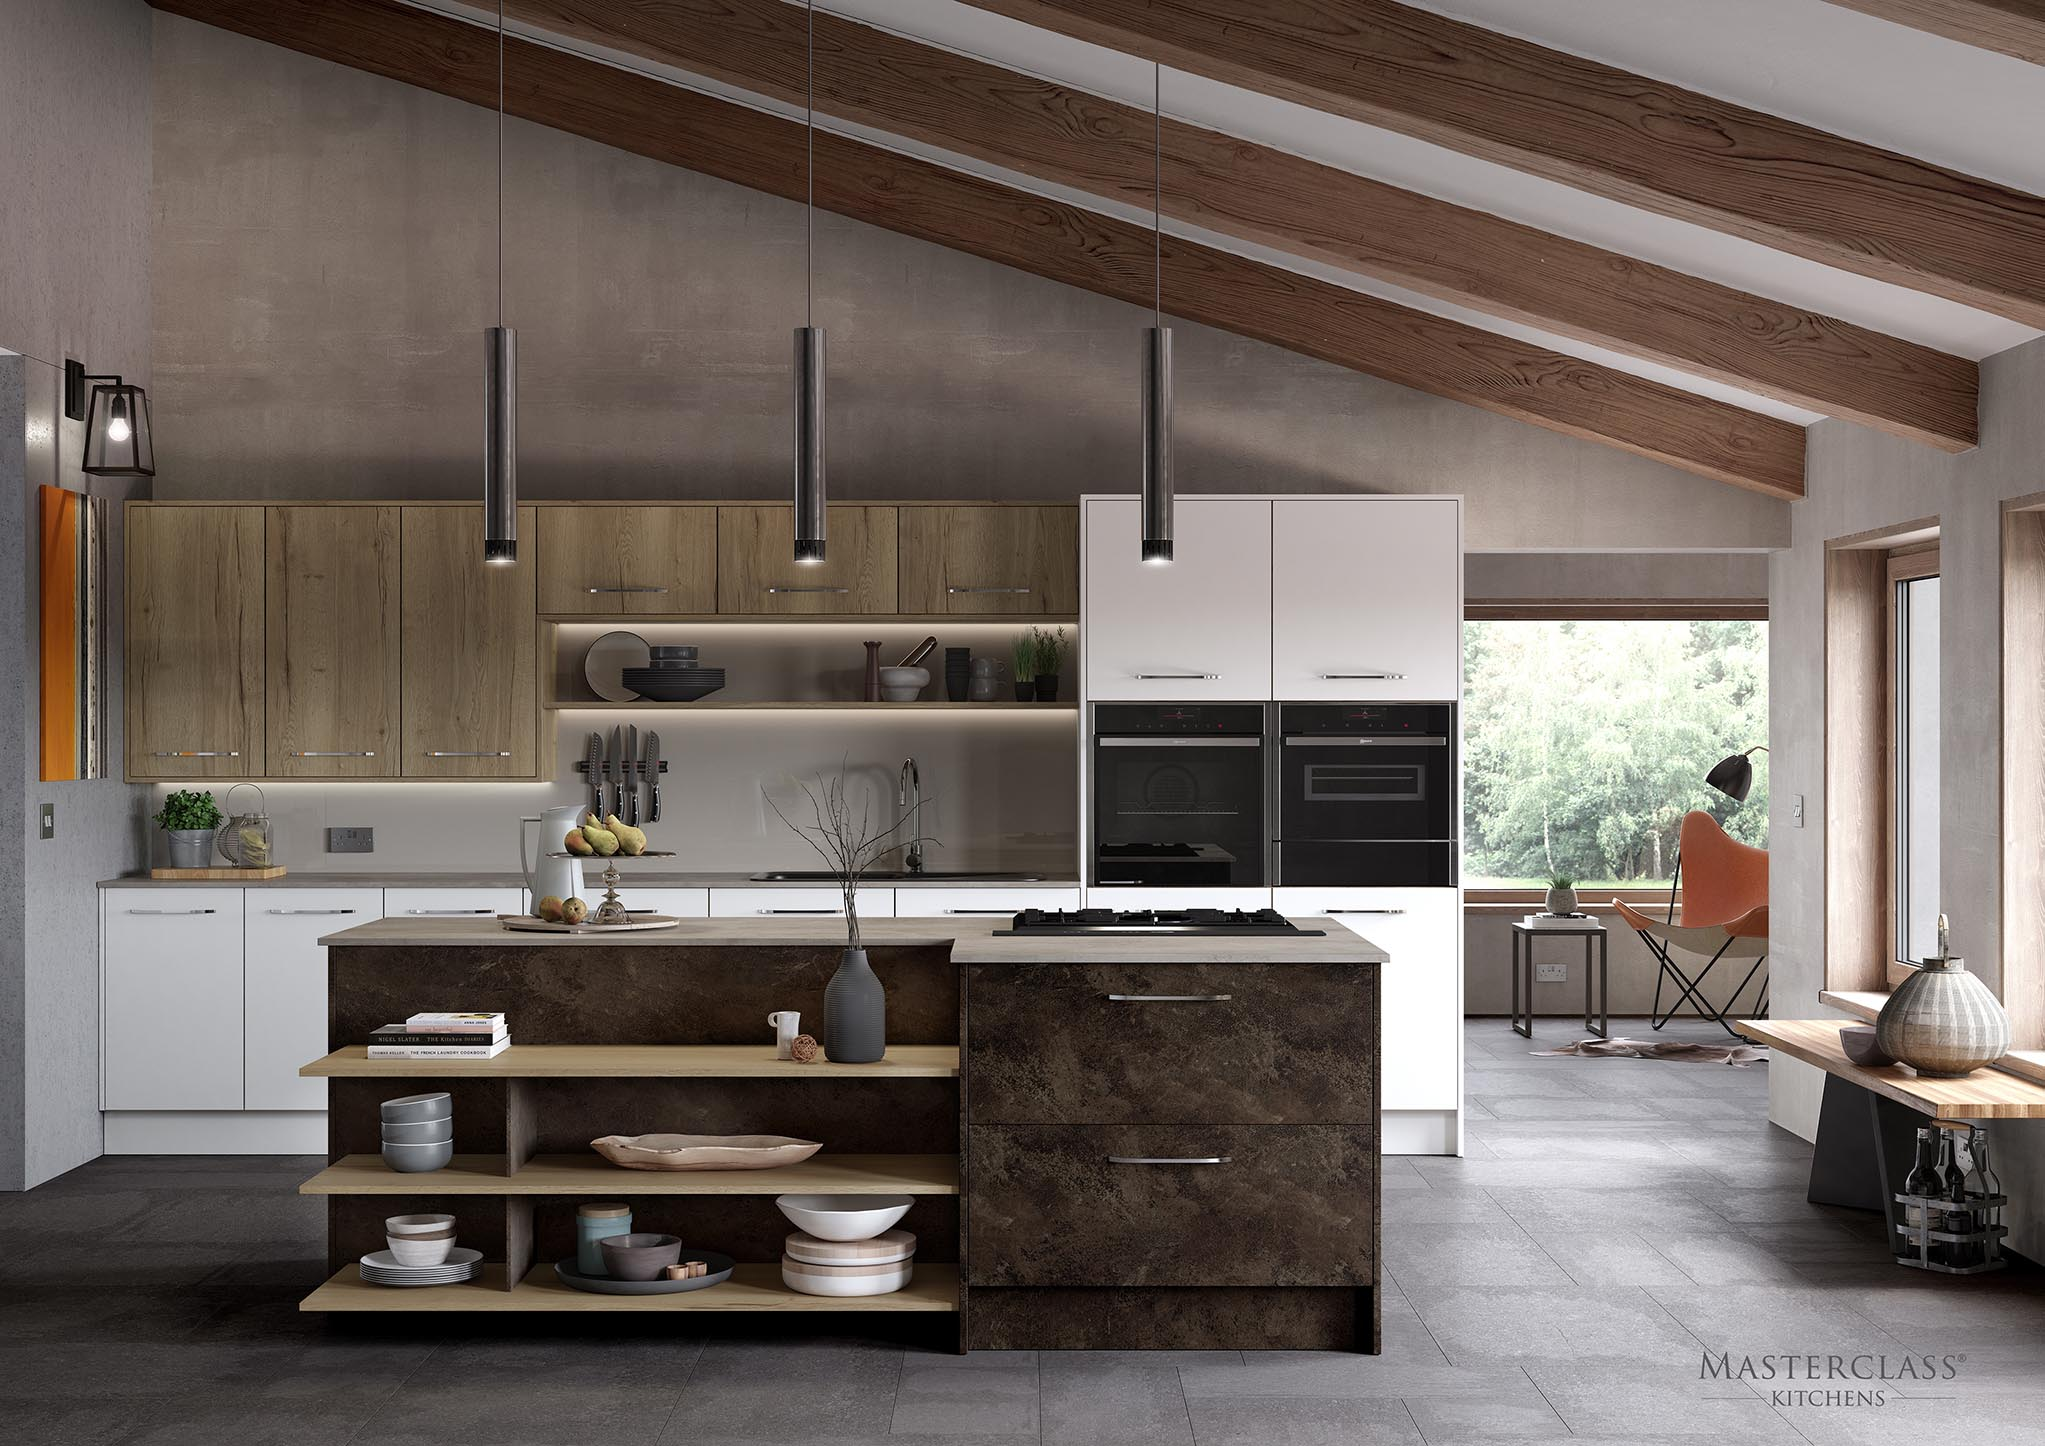 Benefits To A Professionally Designed Kitchen